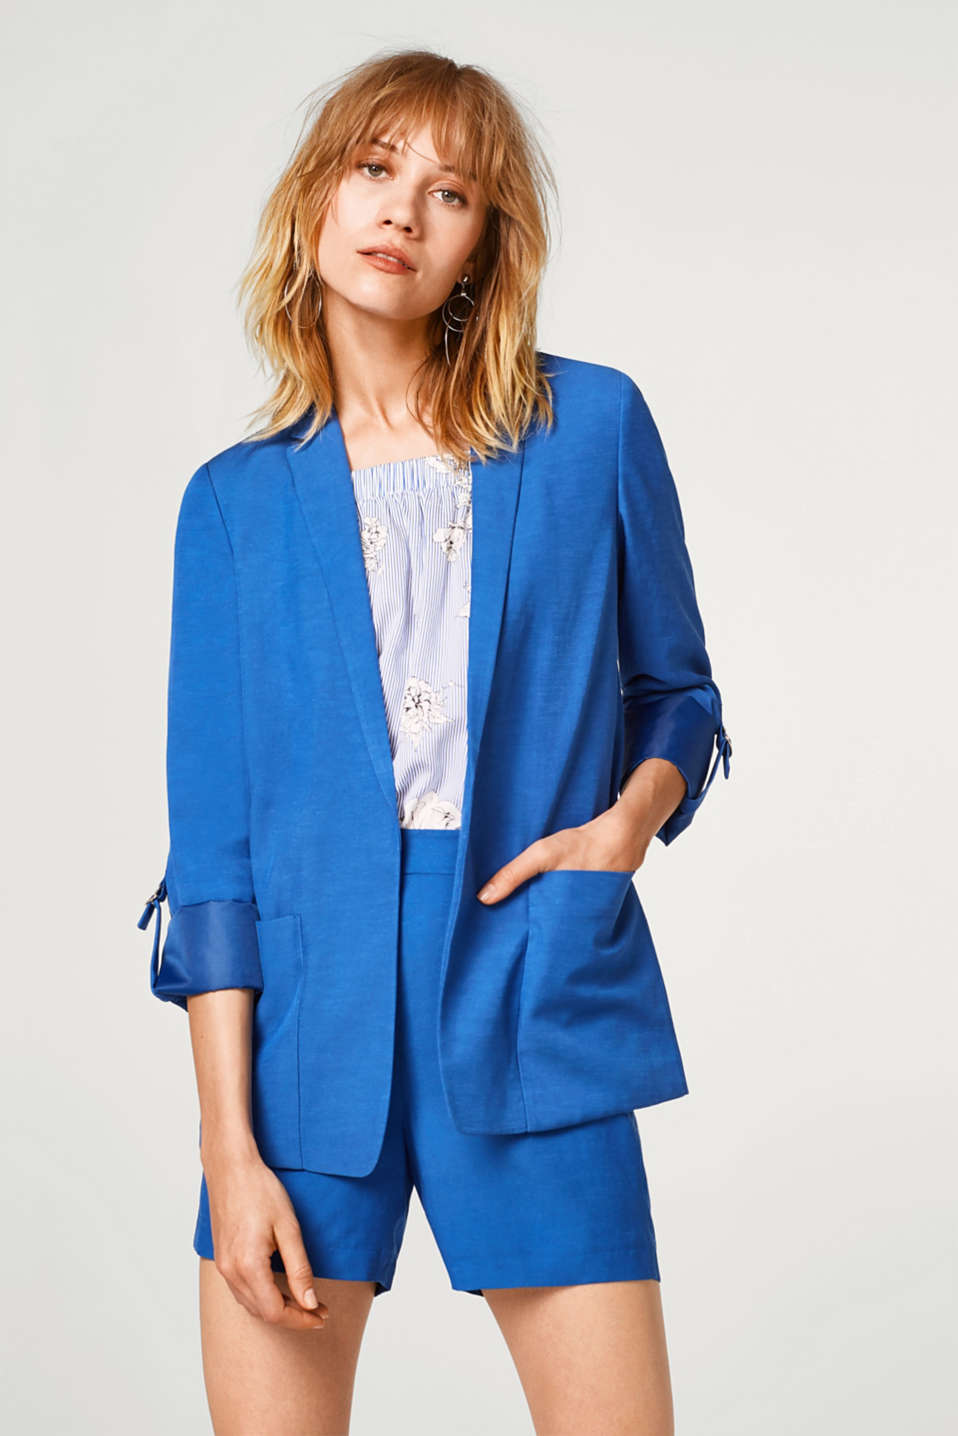 Esprit - SUMMER SUIT mix + match casual turn-up blazer